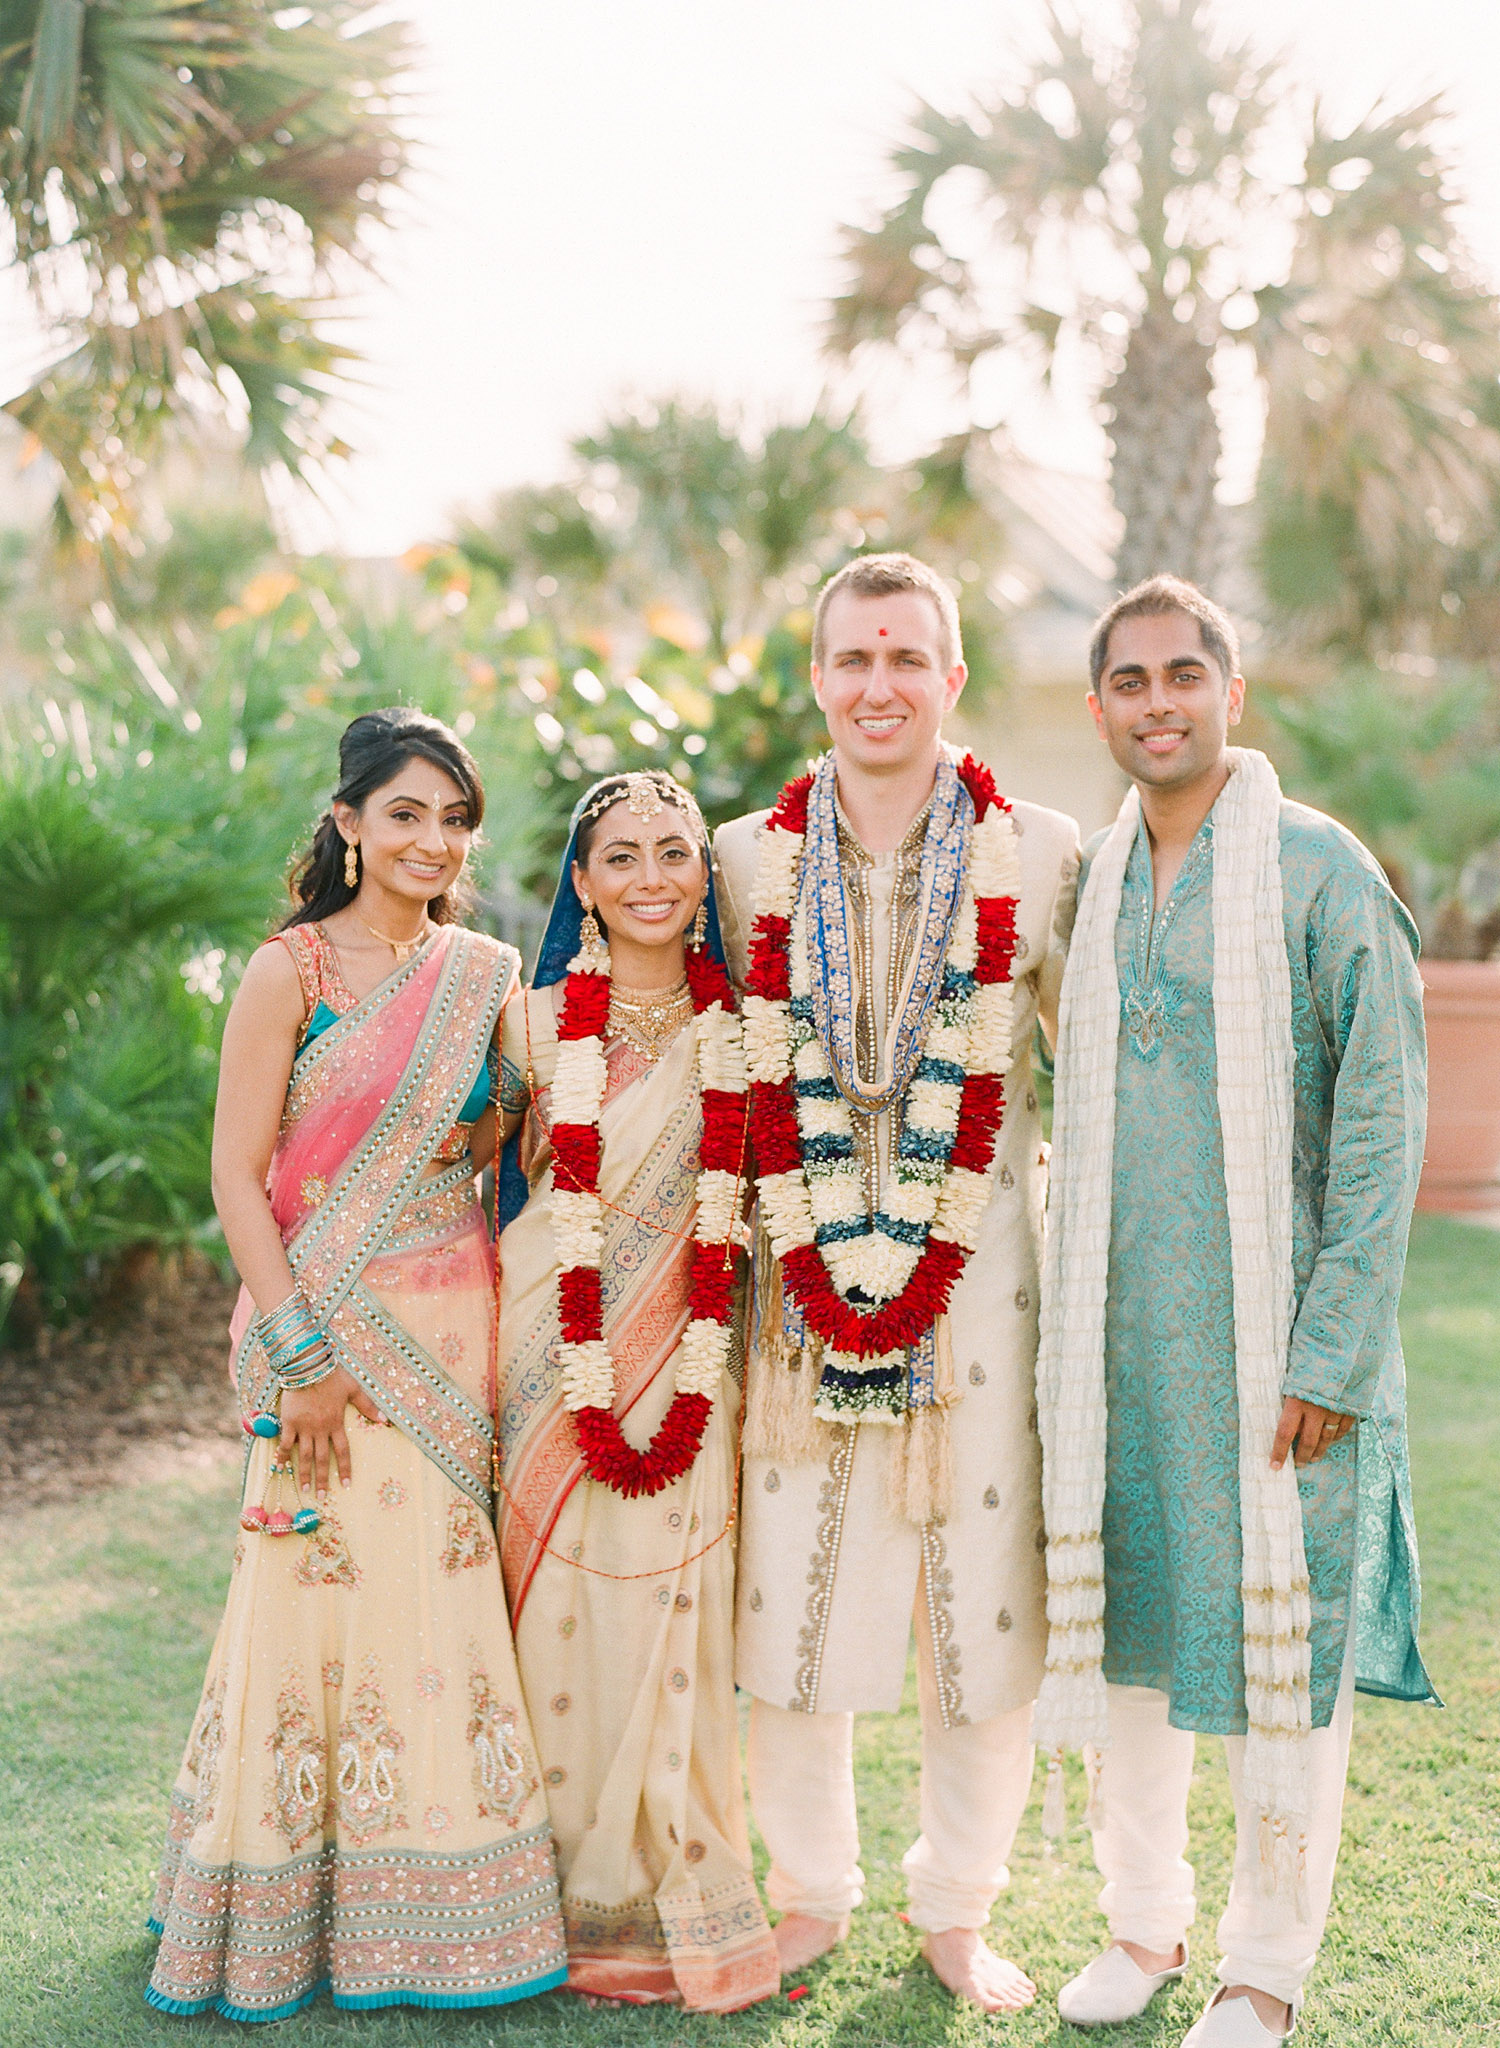 family formal photos after this Indian Wedding in Florida photographed by Destination Wedding Photographer, LExia Frank - a top indian wedding photographer - who shoots film for luxury indian weddings preferring the soft skin tones and vibrant colors for indian weddings in india and worldwide